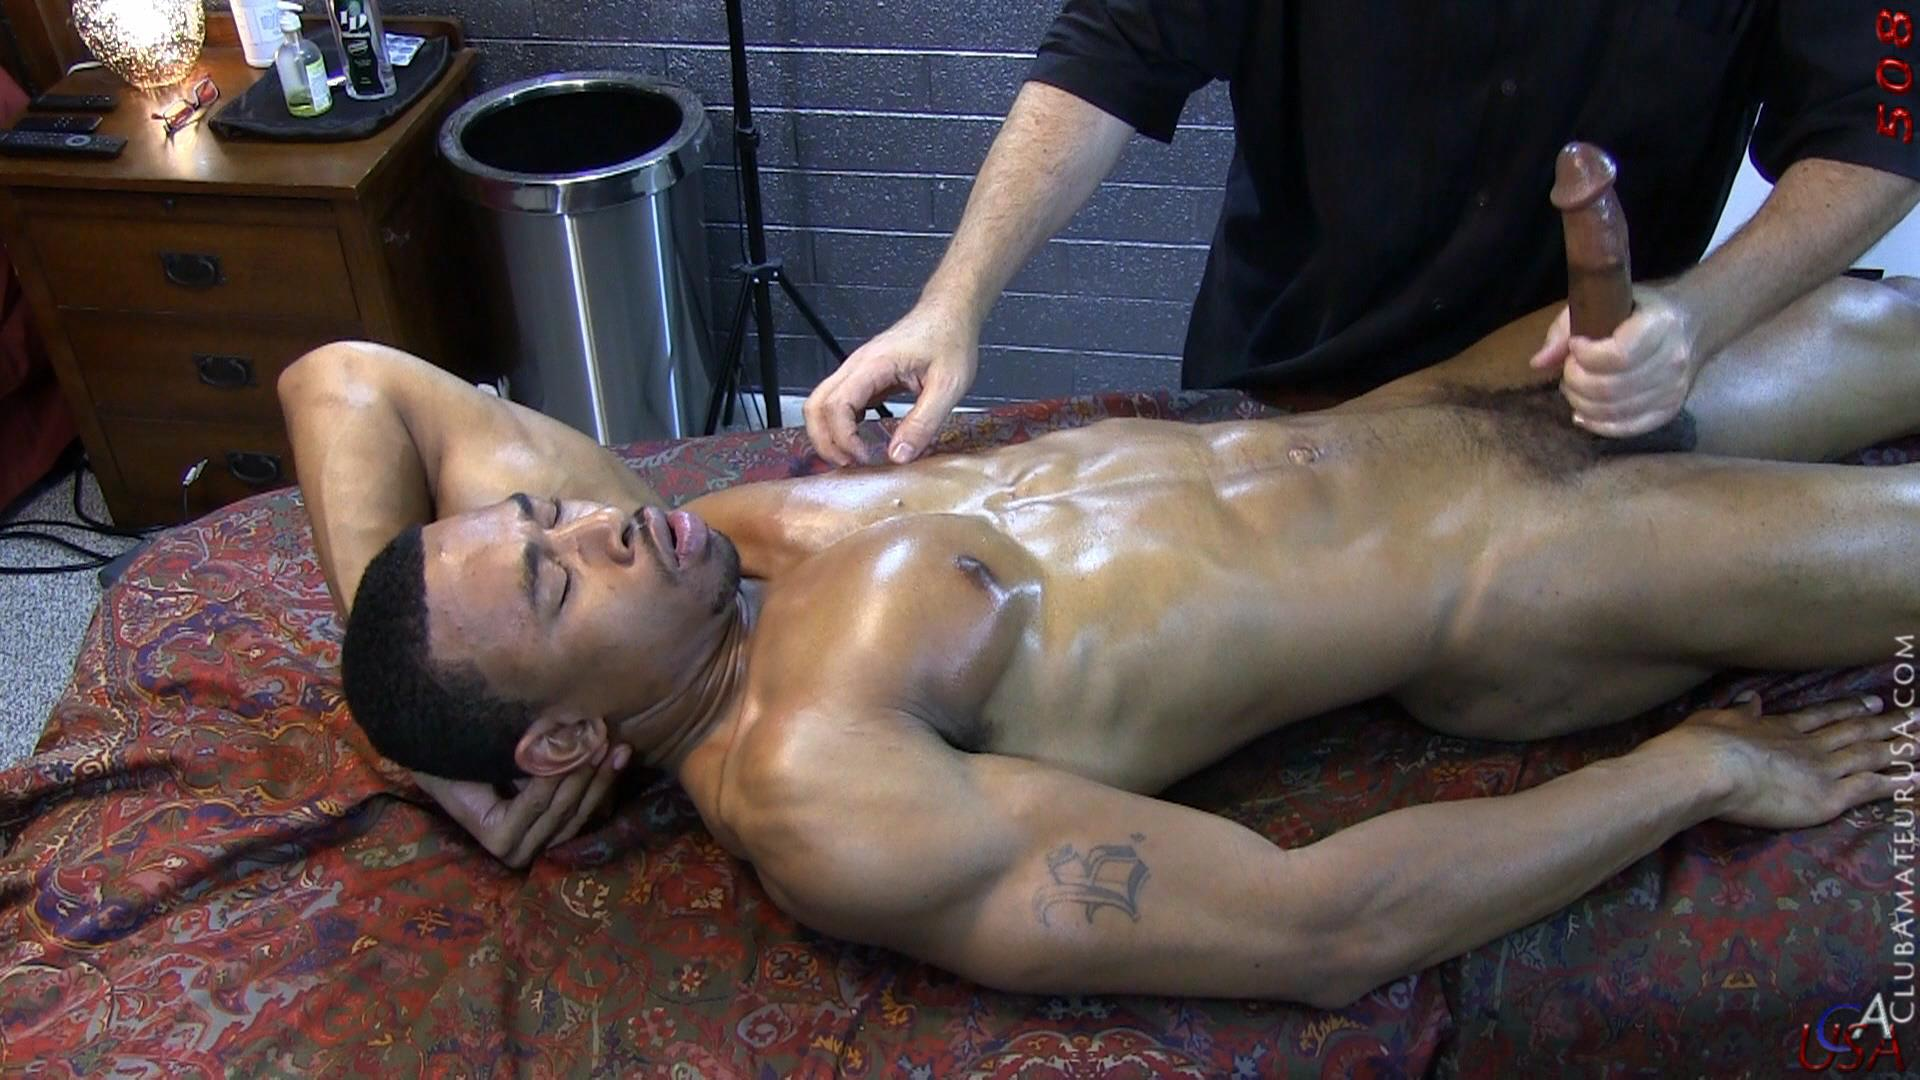 Club Amateur USA Gracen Straight Big Black Cock Getting Sucked With Cum Amateur Gay Porn 28 Straight Ghetto Thug Gets A Massage With A Happy Ending From A Guy